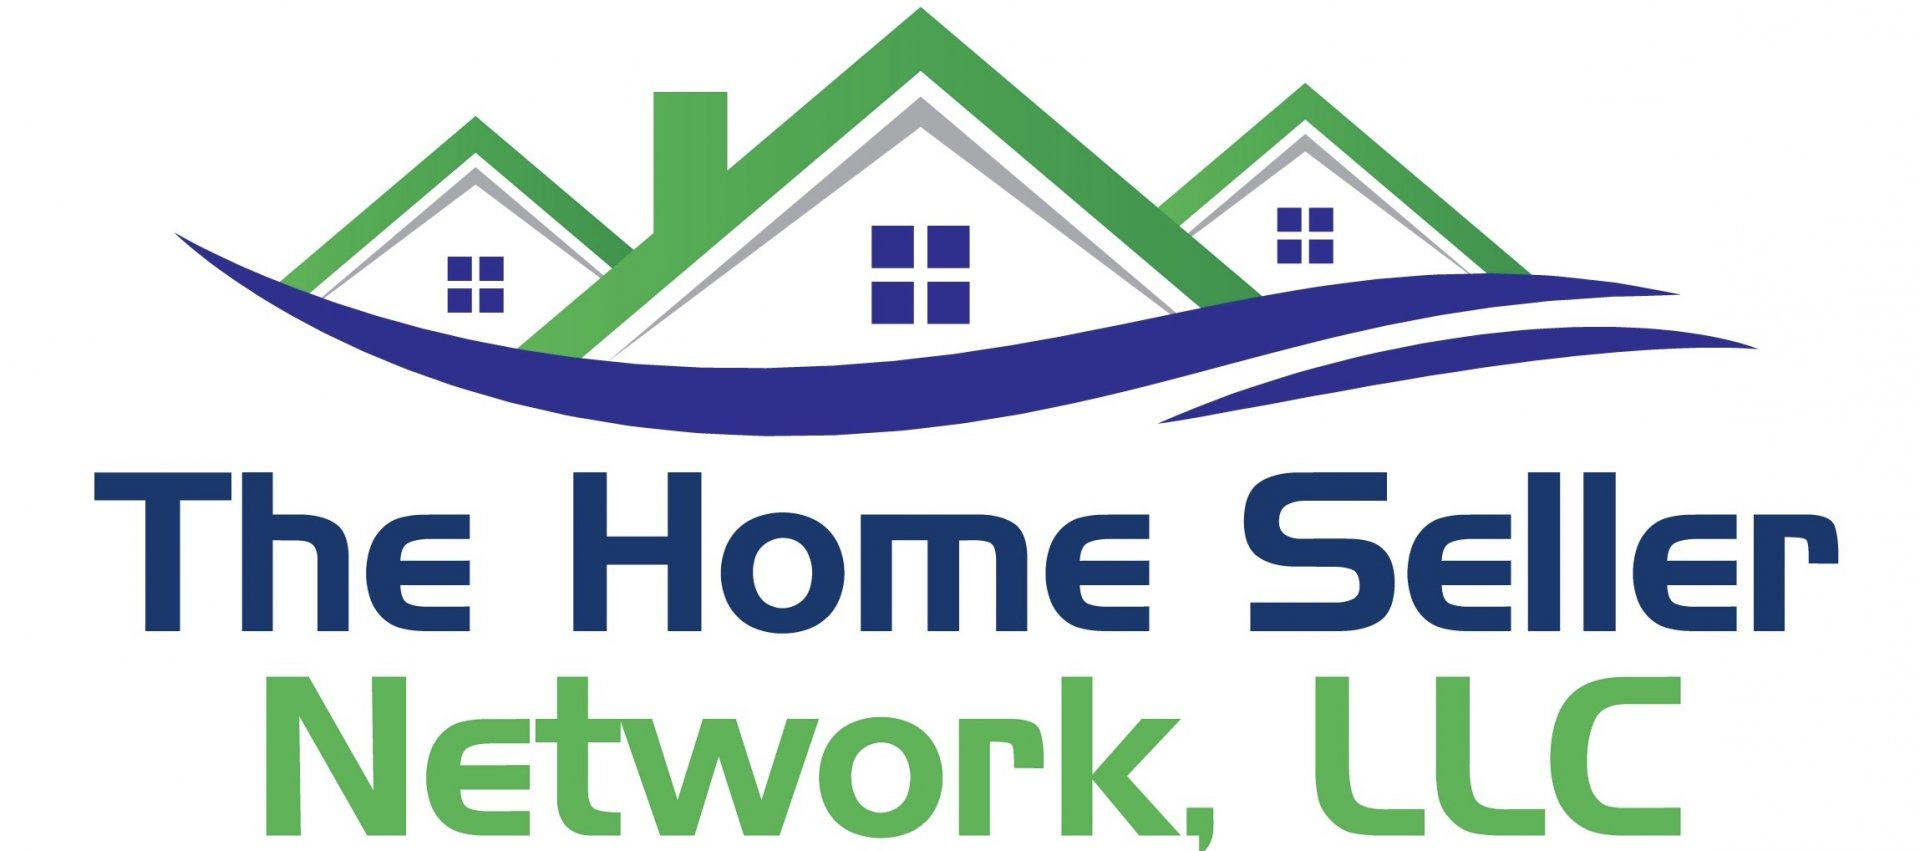 The Home Seller Network, LLC